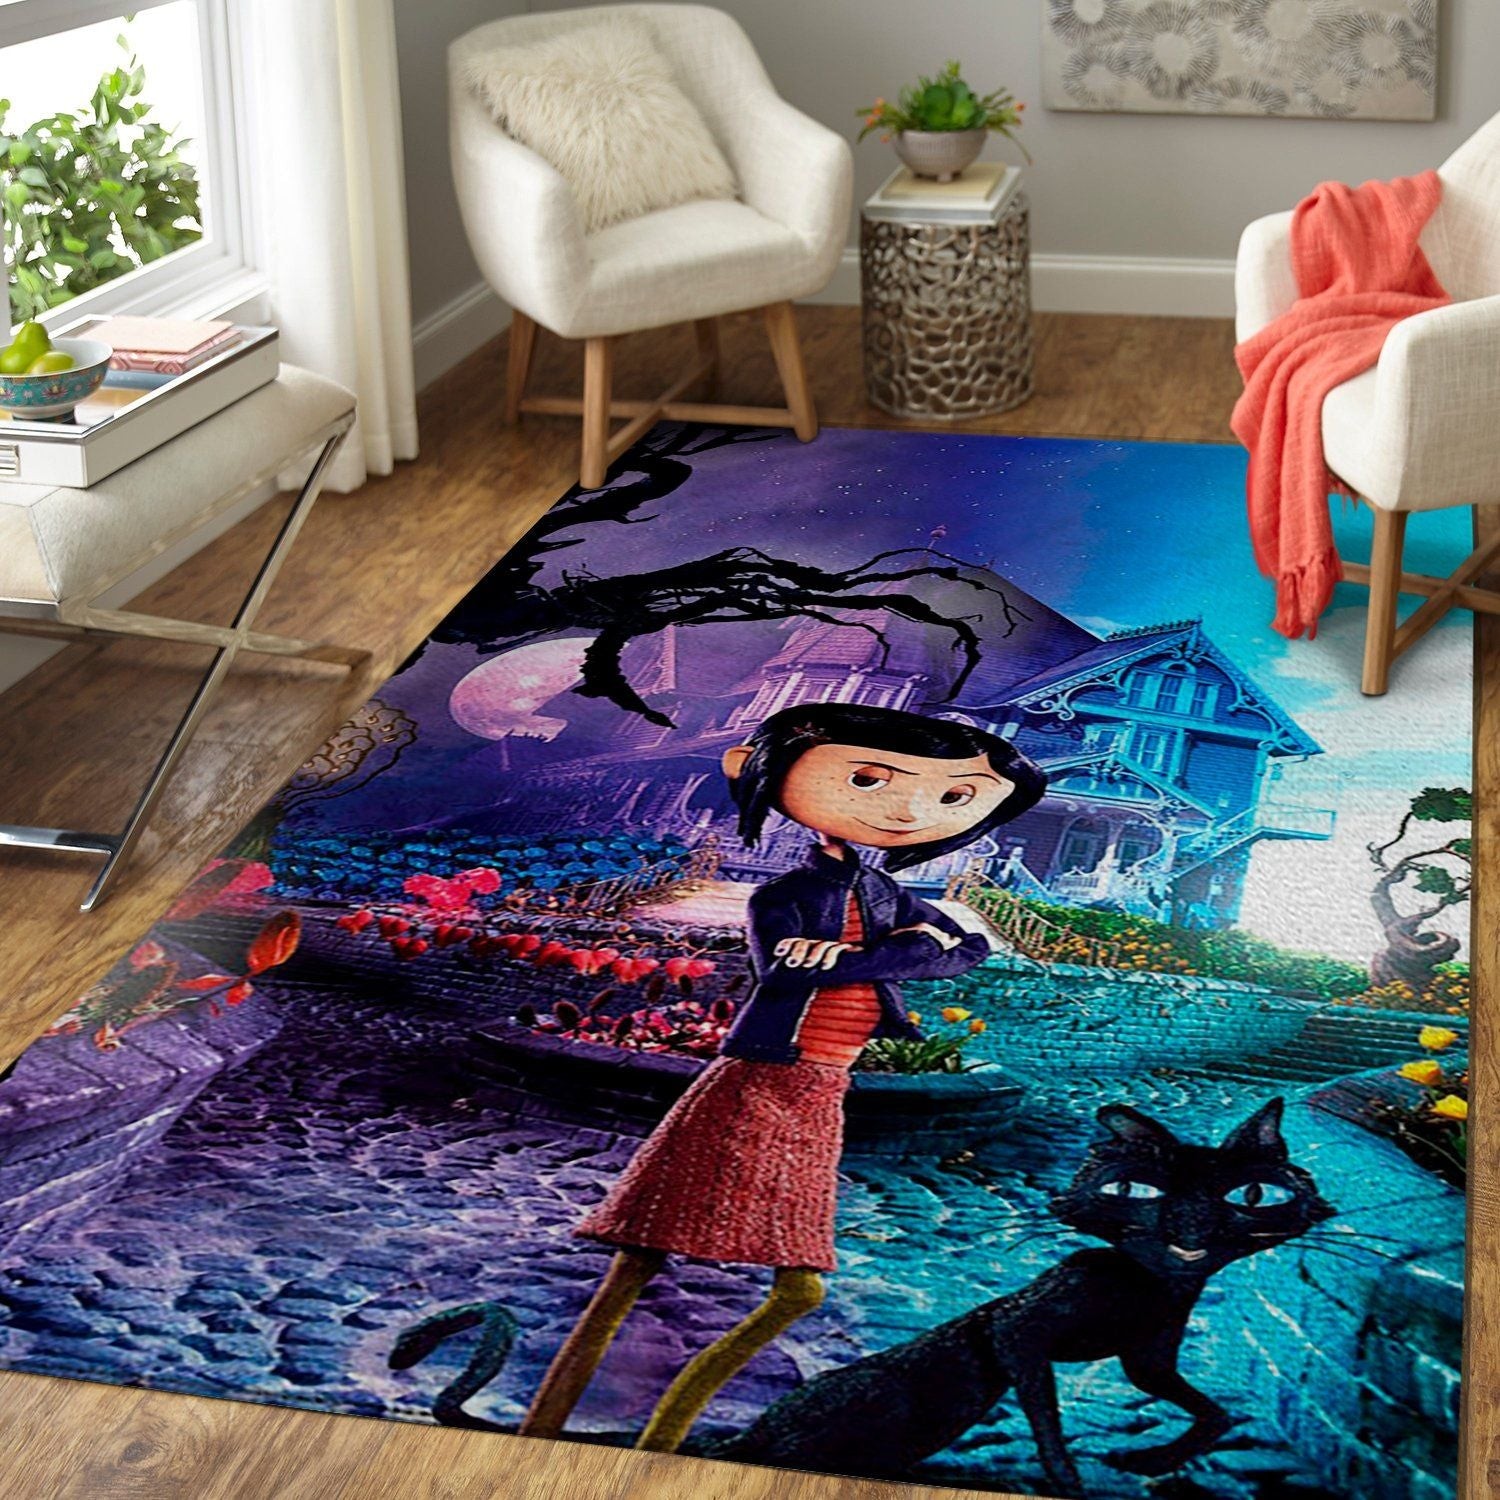 Coraline Area Rug / Movie Floor Decor CM190901